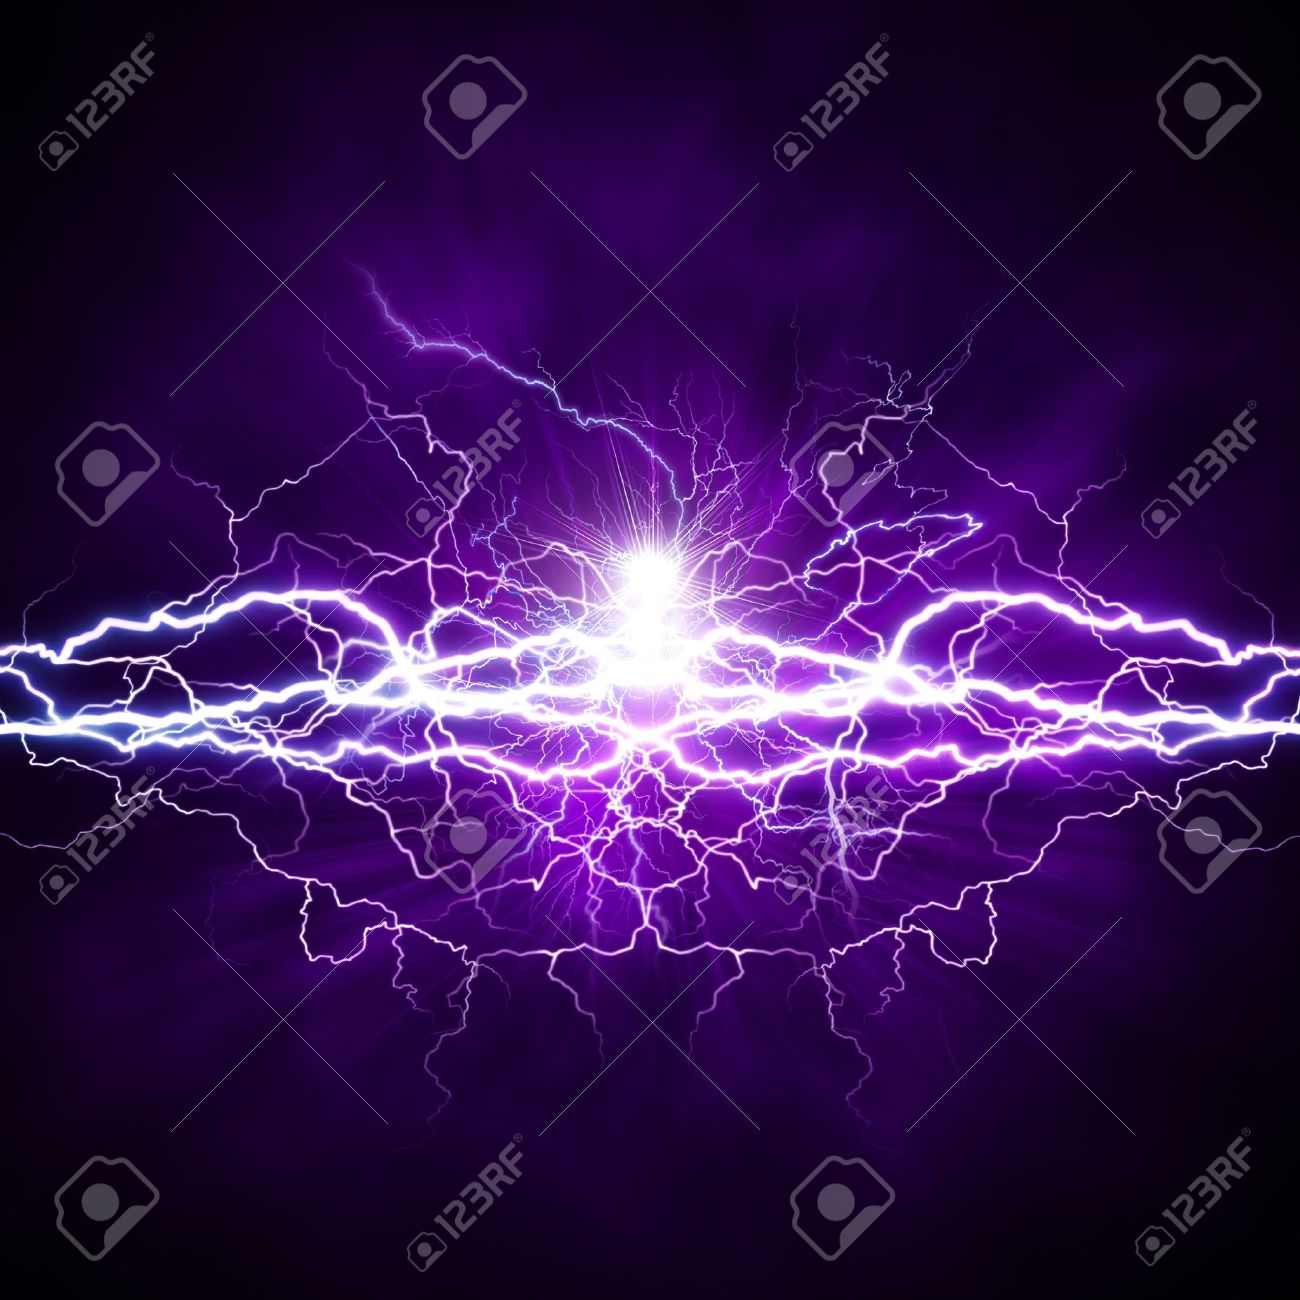 Power of light. Abstract environmental backgrounds - 18702156